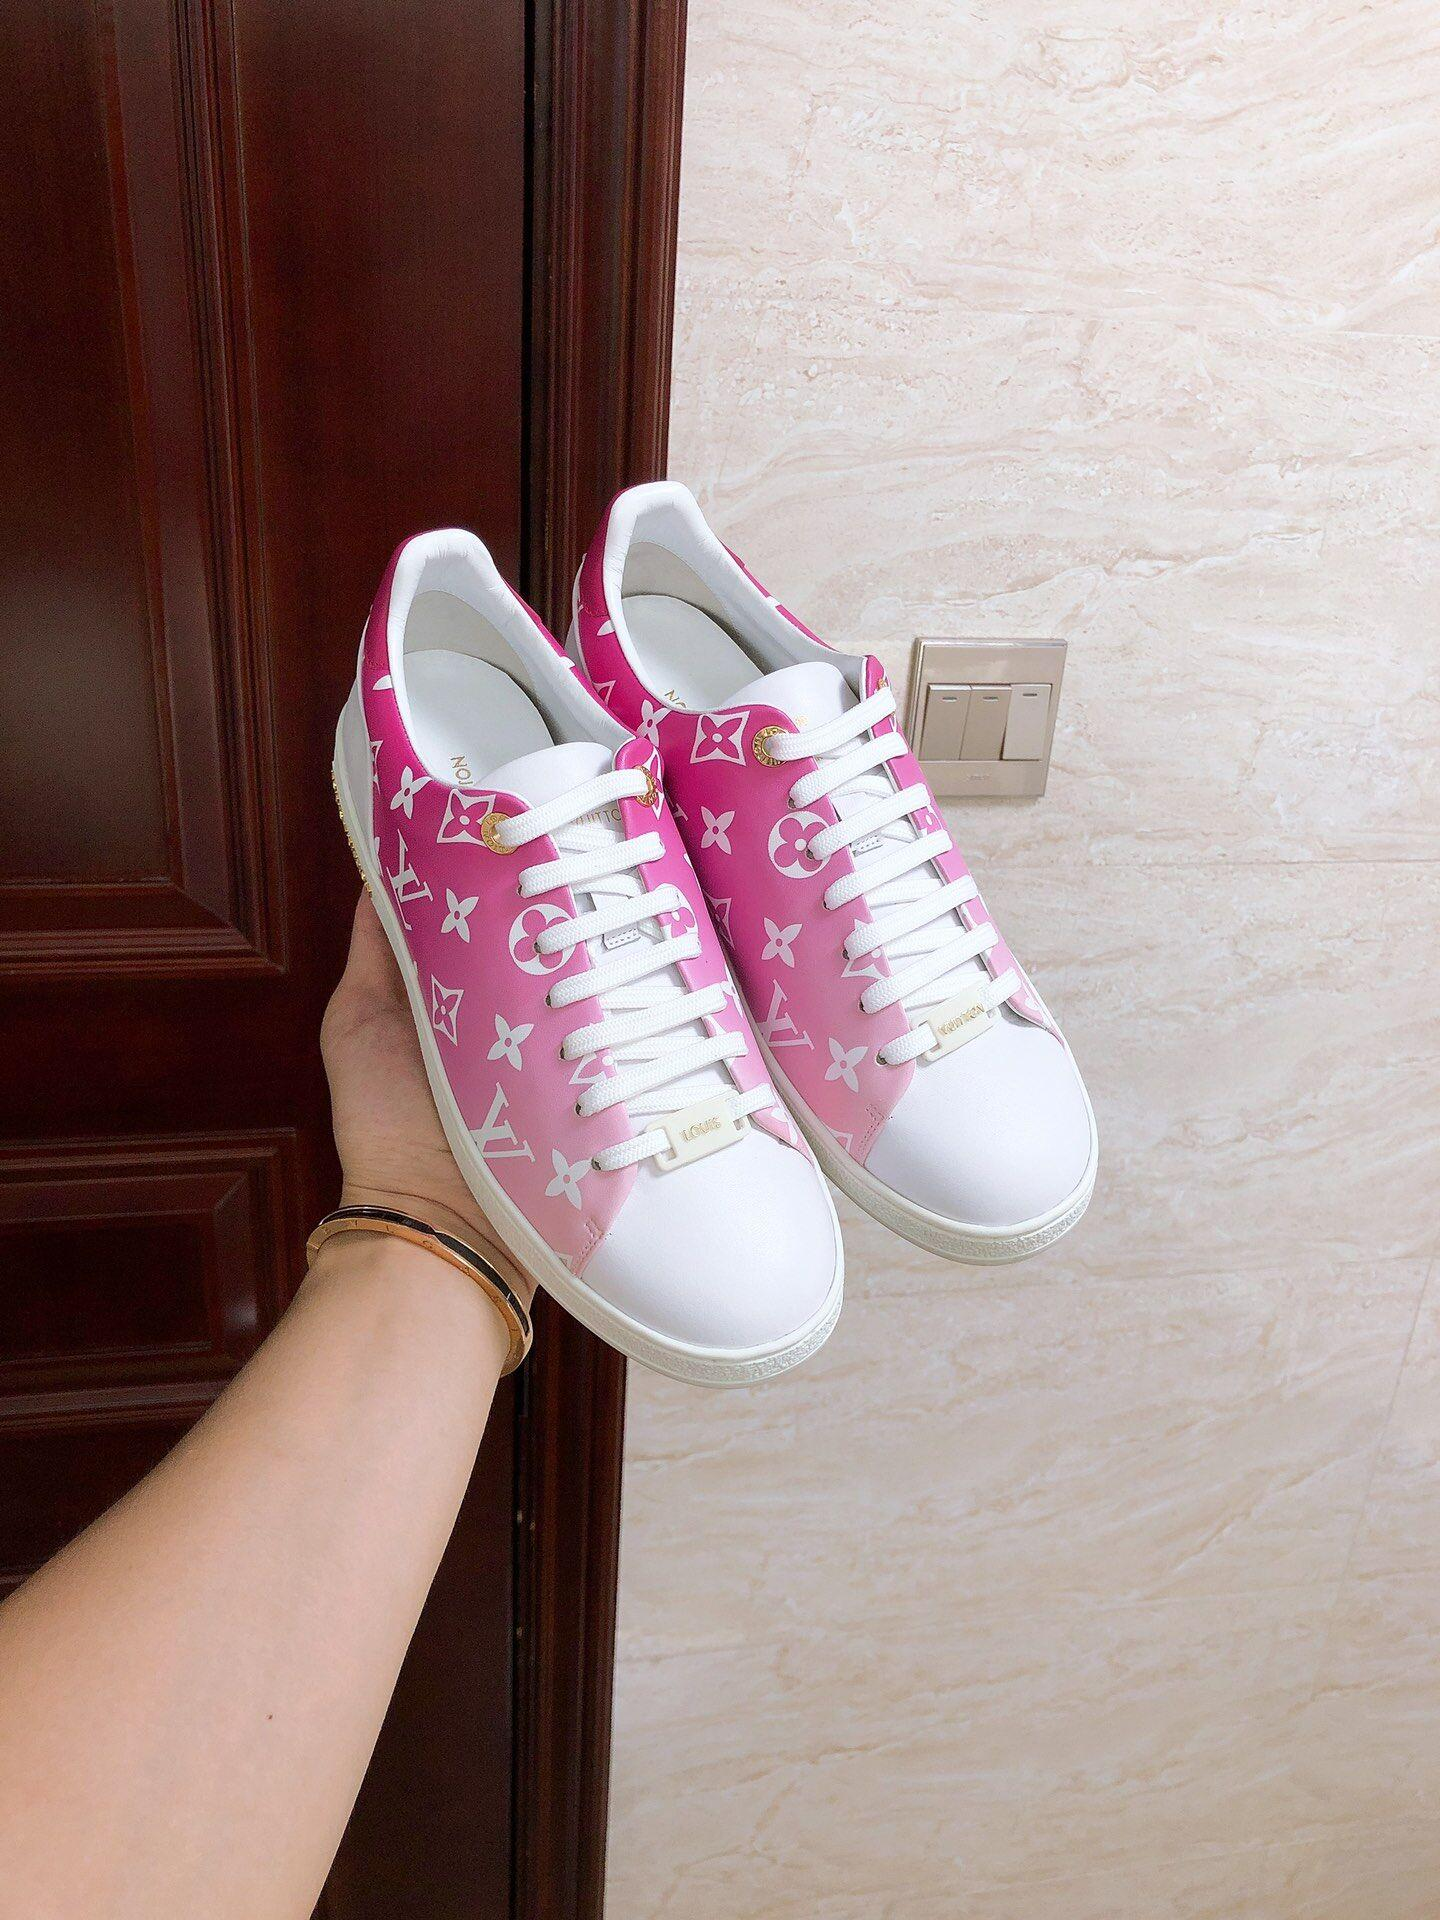 frontrow sneaker    sneaker    women shoes    pink  shoes 1A87CE  7